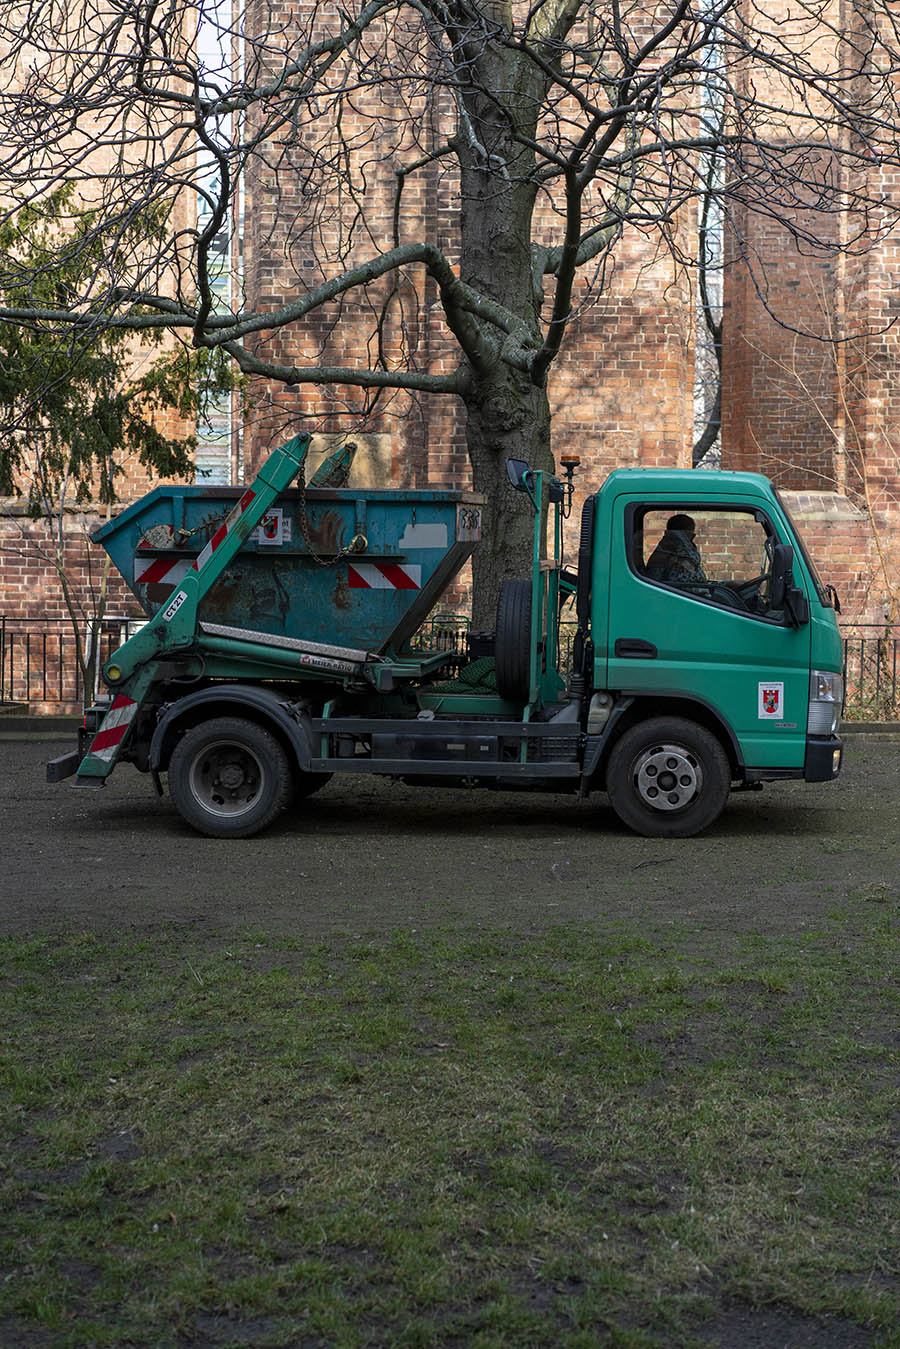 A truck by a gardener. In the background a tree and the Klosterruine